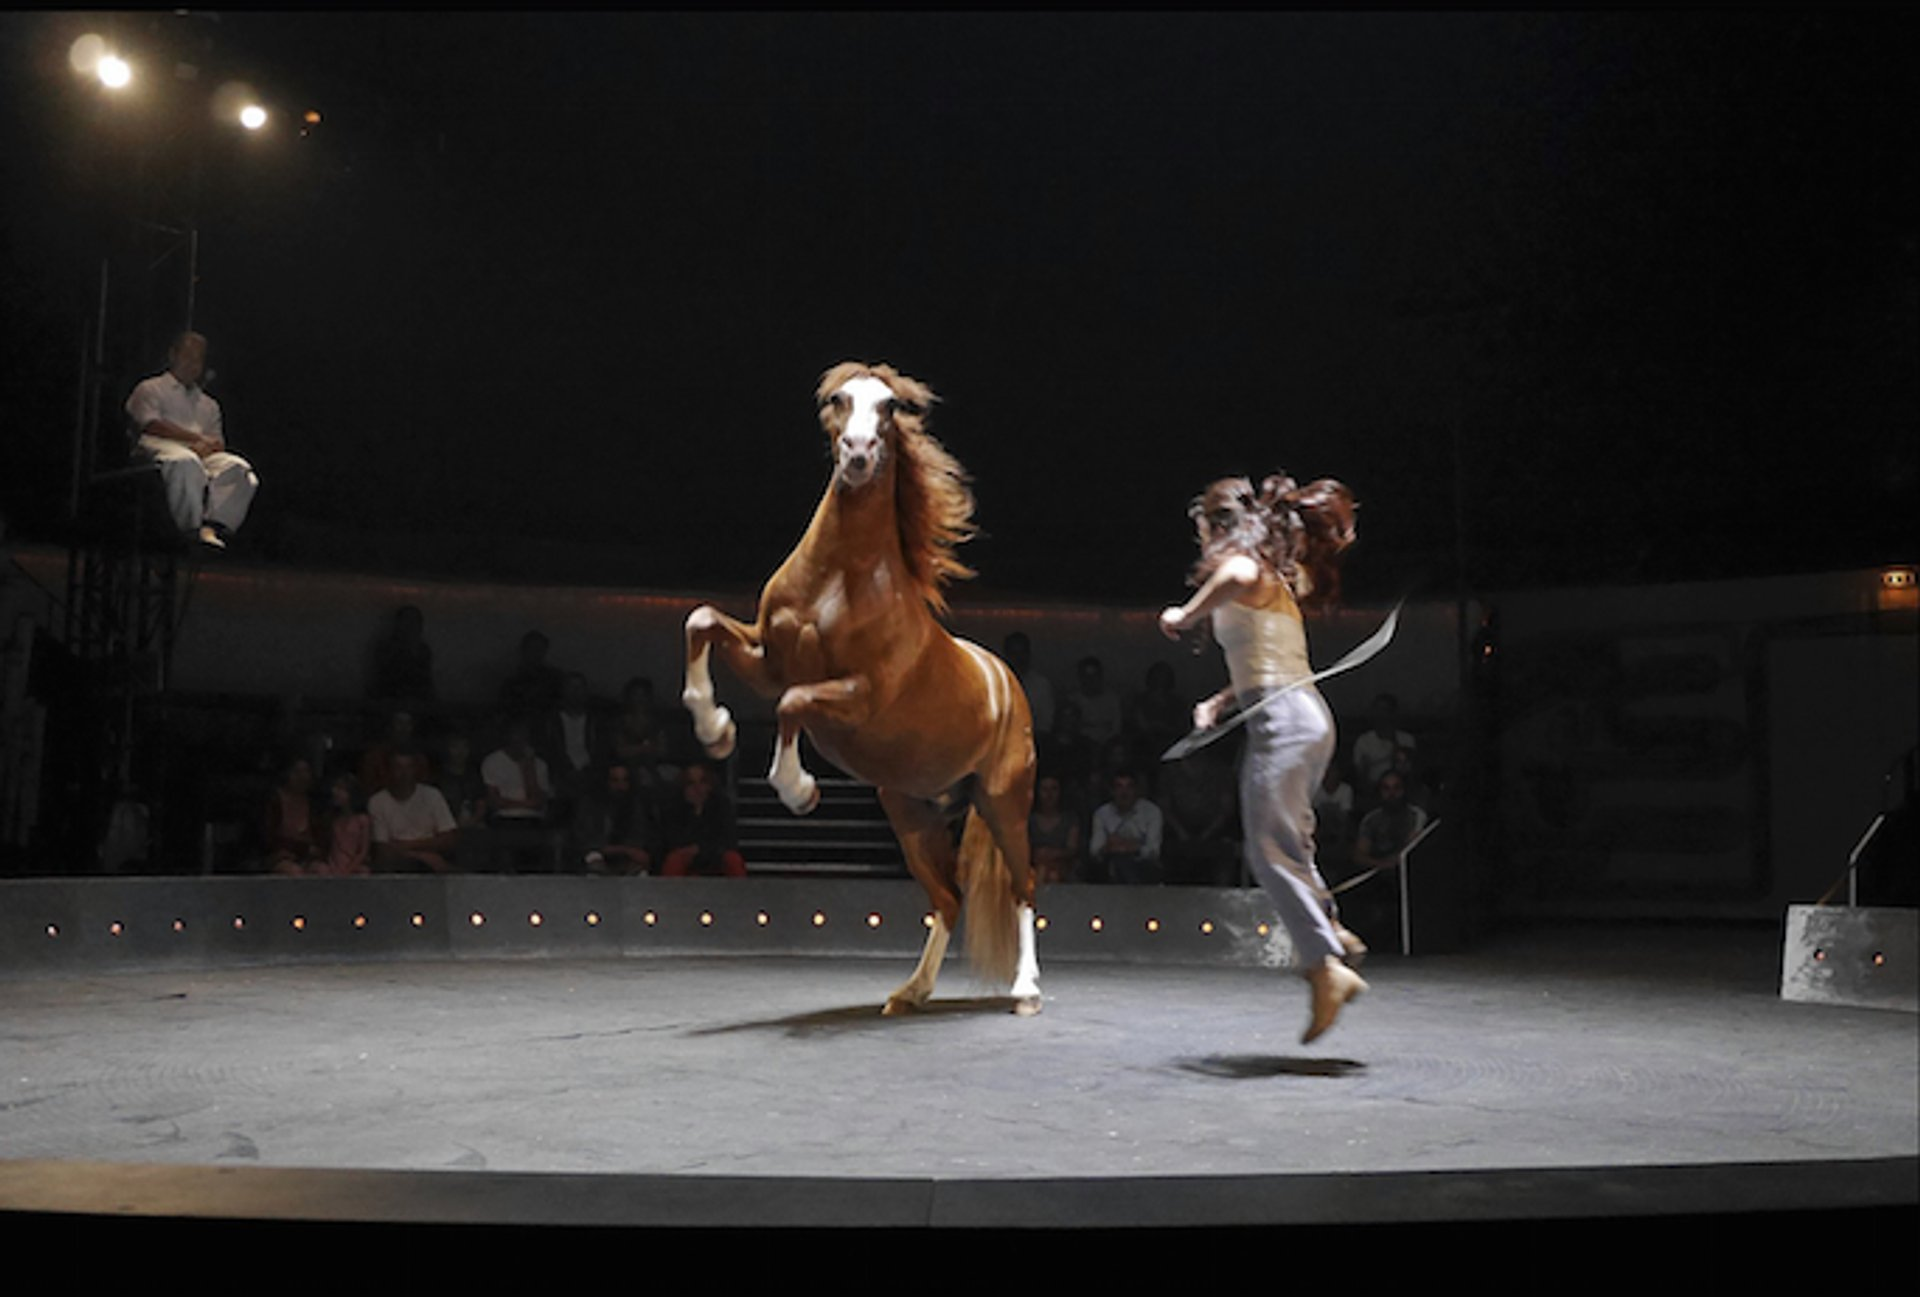 L Entre Deux Biennales Circus Festival 2021 In Provence French Riviera Dates